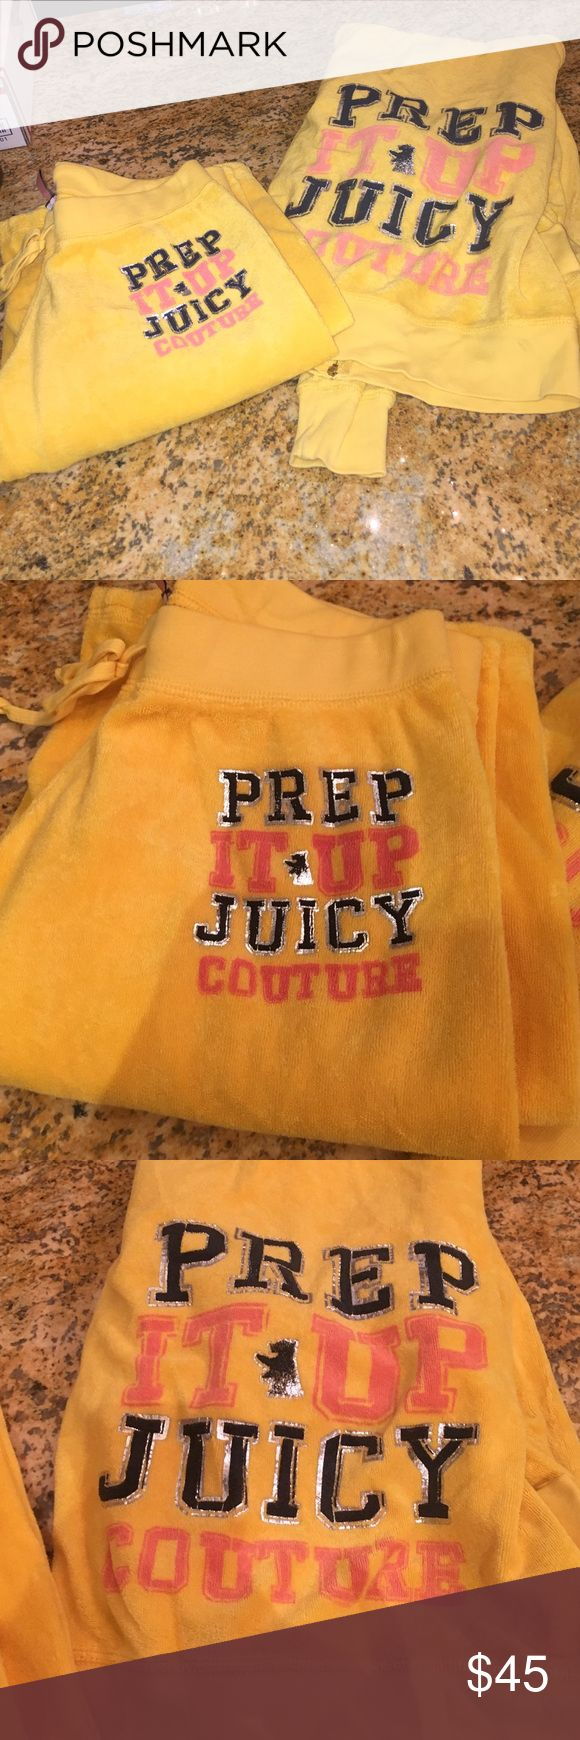 "Yellow terry cloth juicy couture track suit gorgeous juicy couture tracksuit with the saying ""Prep it up Juicy Couture"" on both the pants and the sweater. Yellow is definitely in for the upcoming Spring/summer... So get it now  for a fraction of the price !✨ Juicy Couture Other"